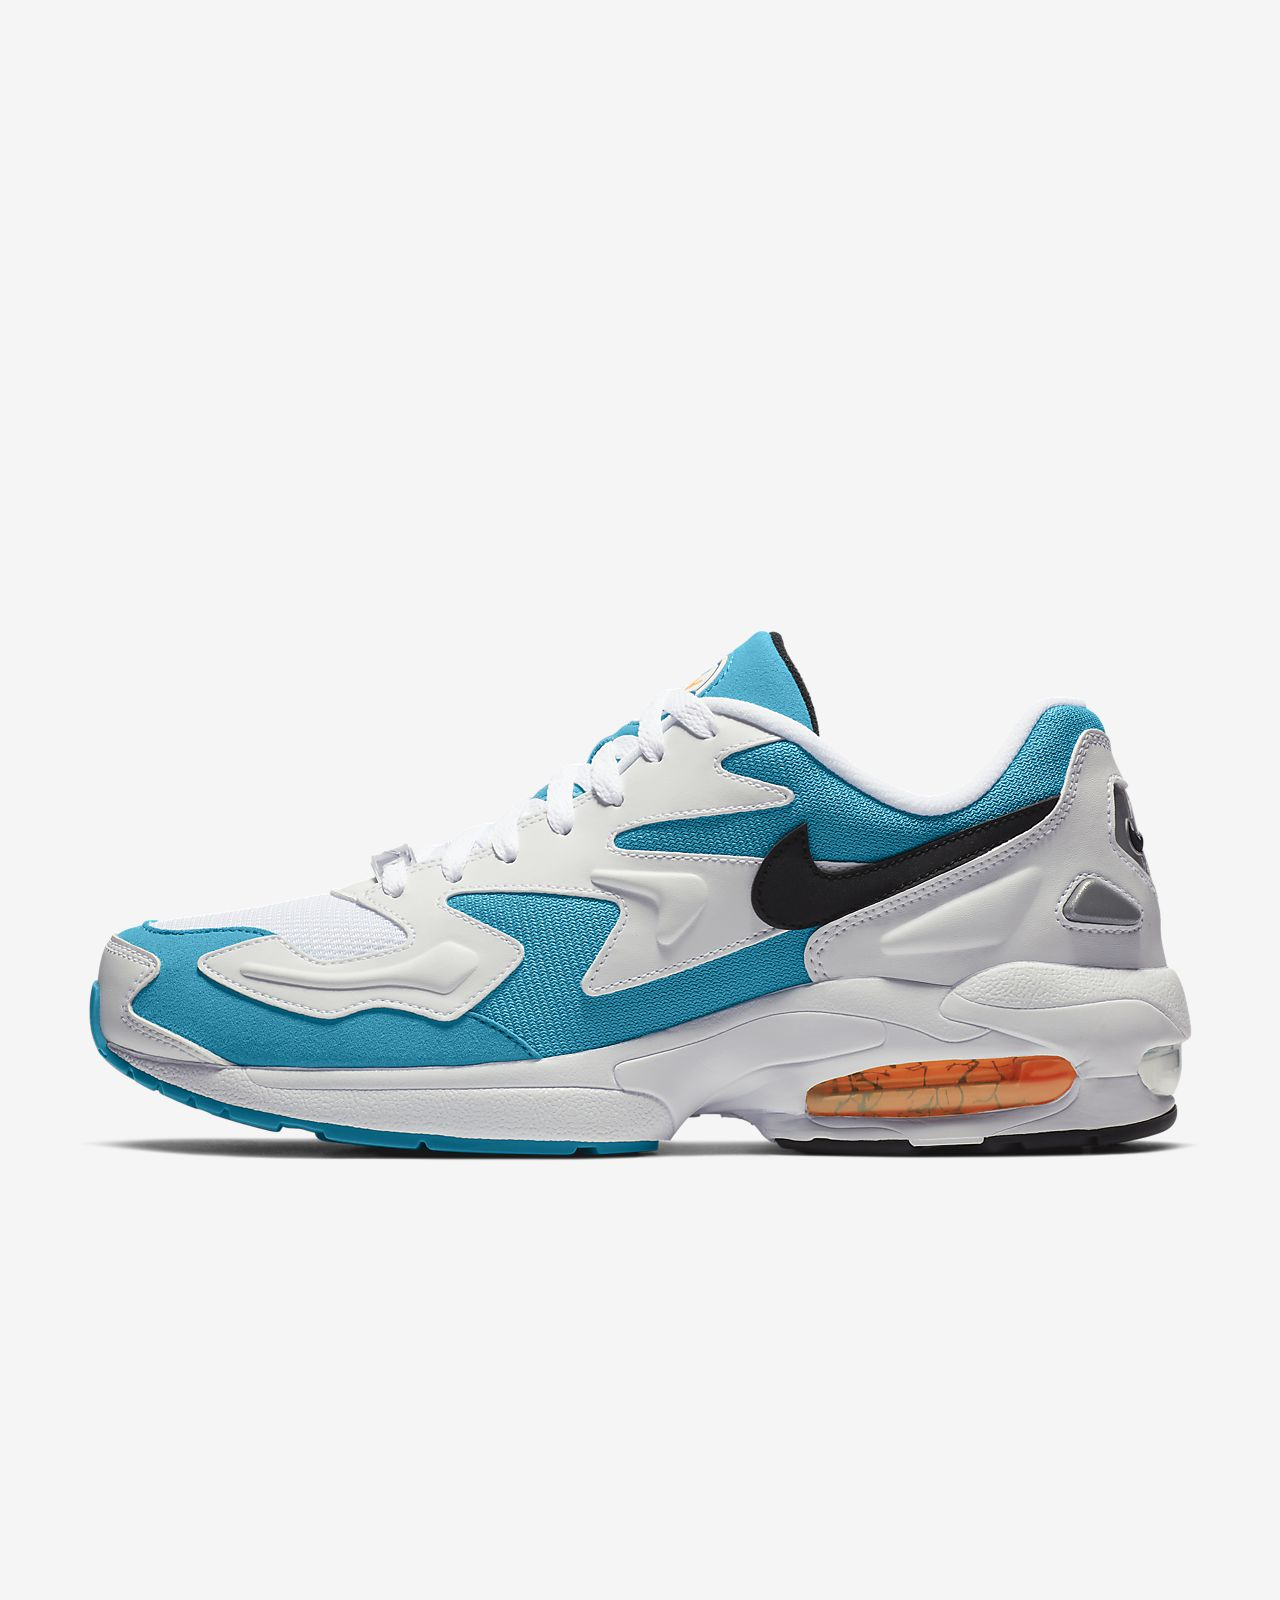 half off 9cebe 80db8 ... Nike Air Max2 Light-sko til mænd